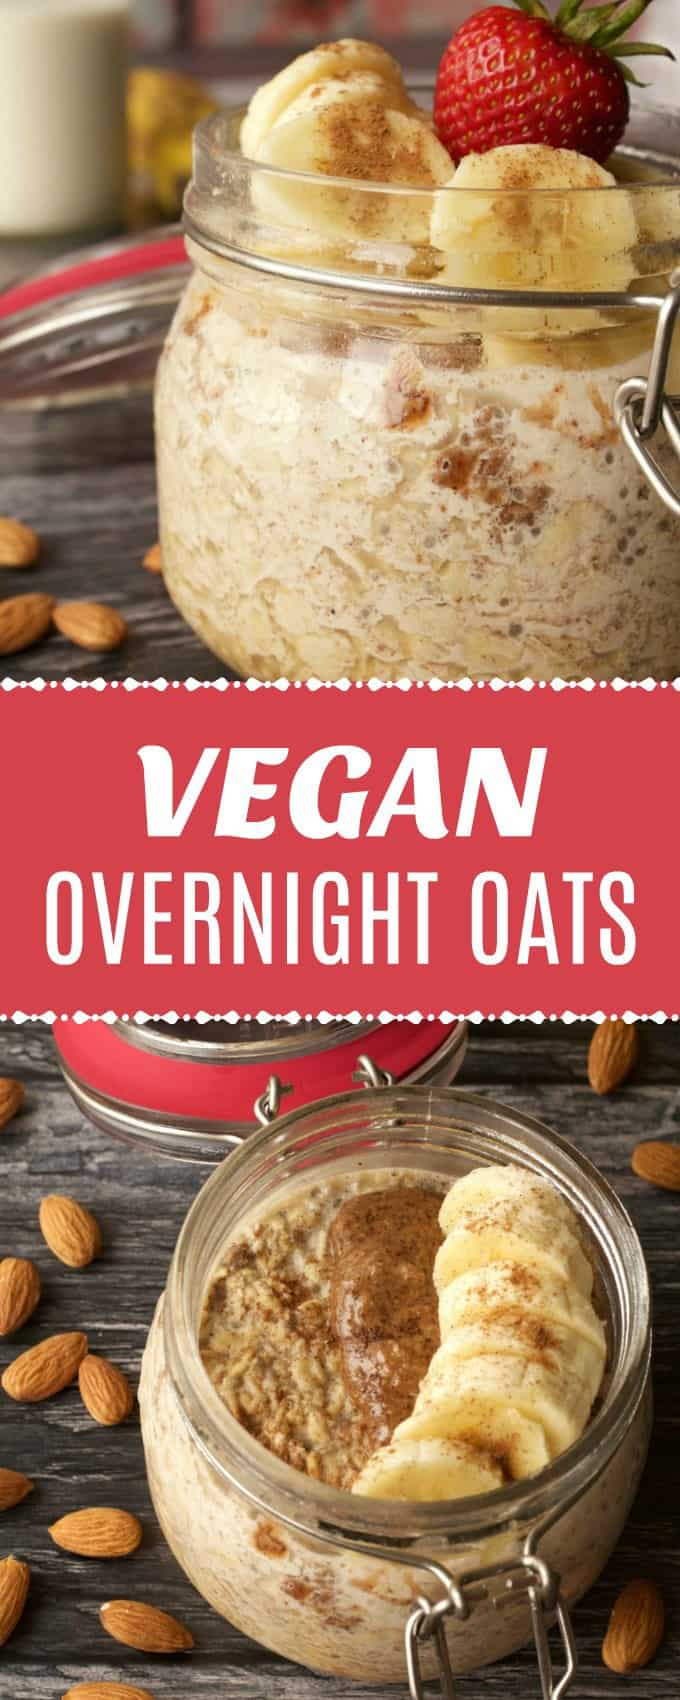 Quick and easy vegan overnight oats with chia seeds and almond butter! Simple recipe for a healthy and nutritious breakfast. Gluten-Free. #vegan #glutenfree #breakfast | lovingitvegan.com